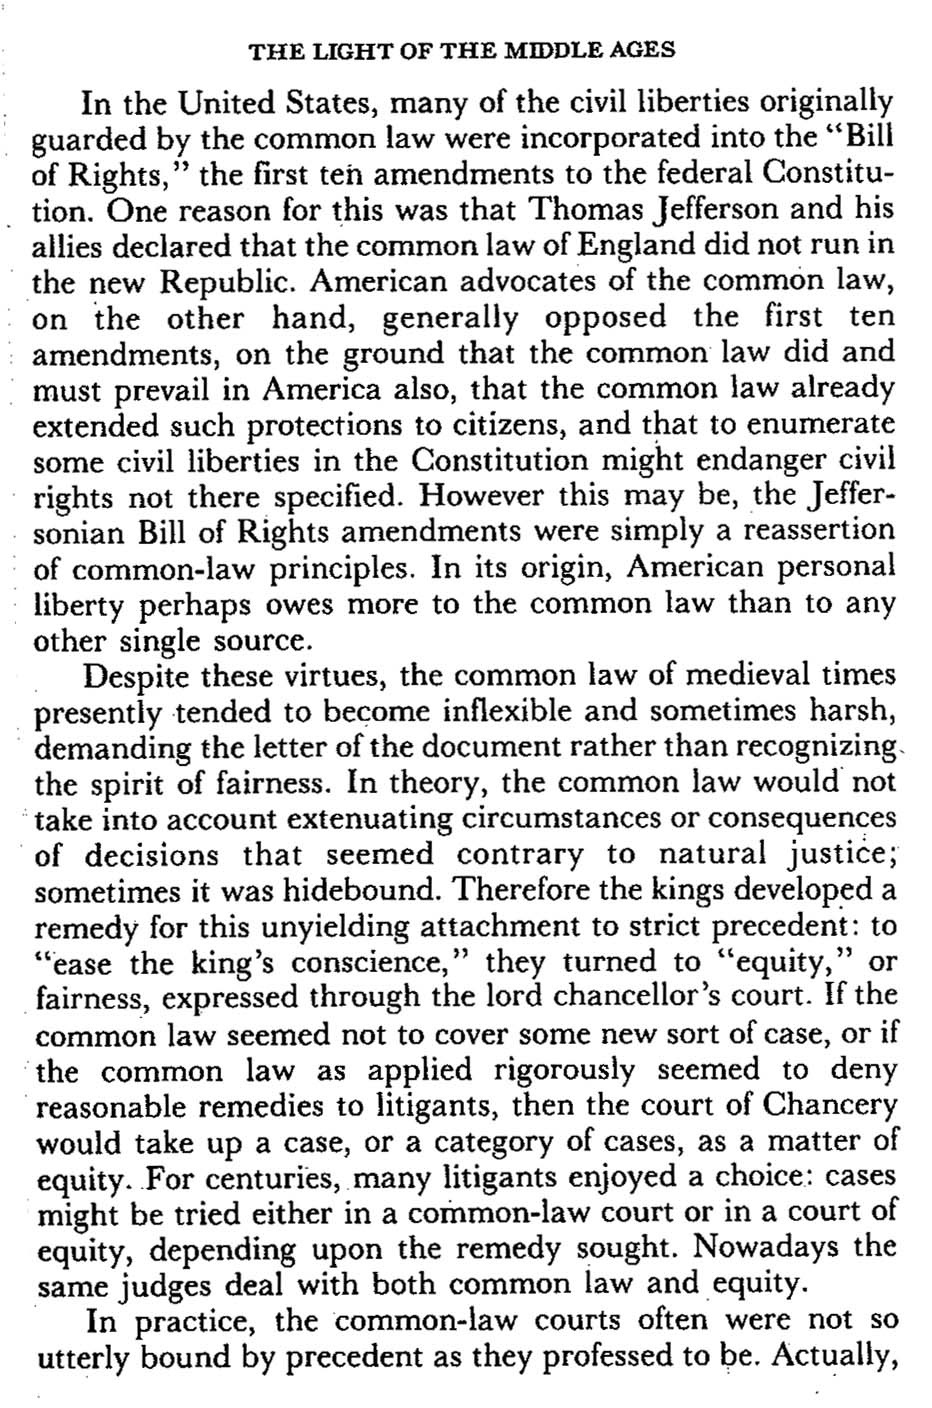 Origin of the Bill of Rights and the Common Law